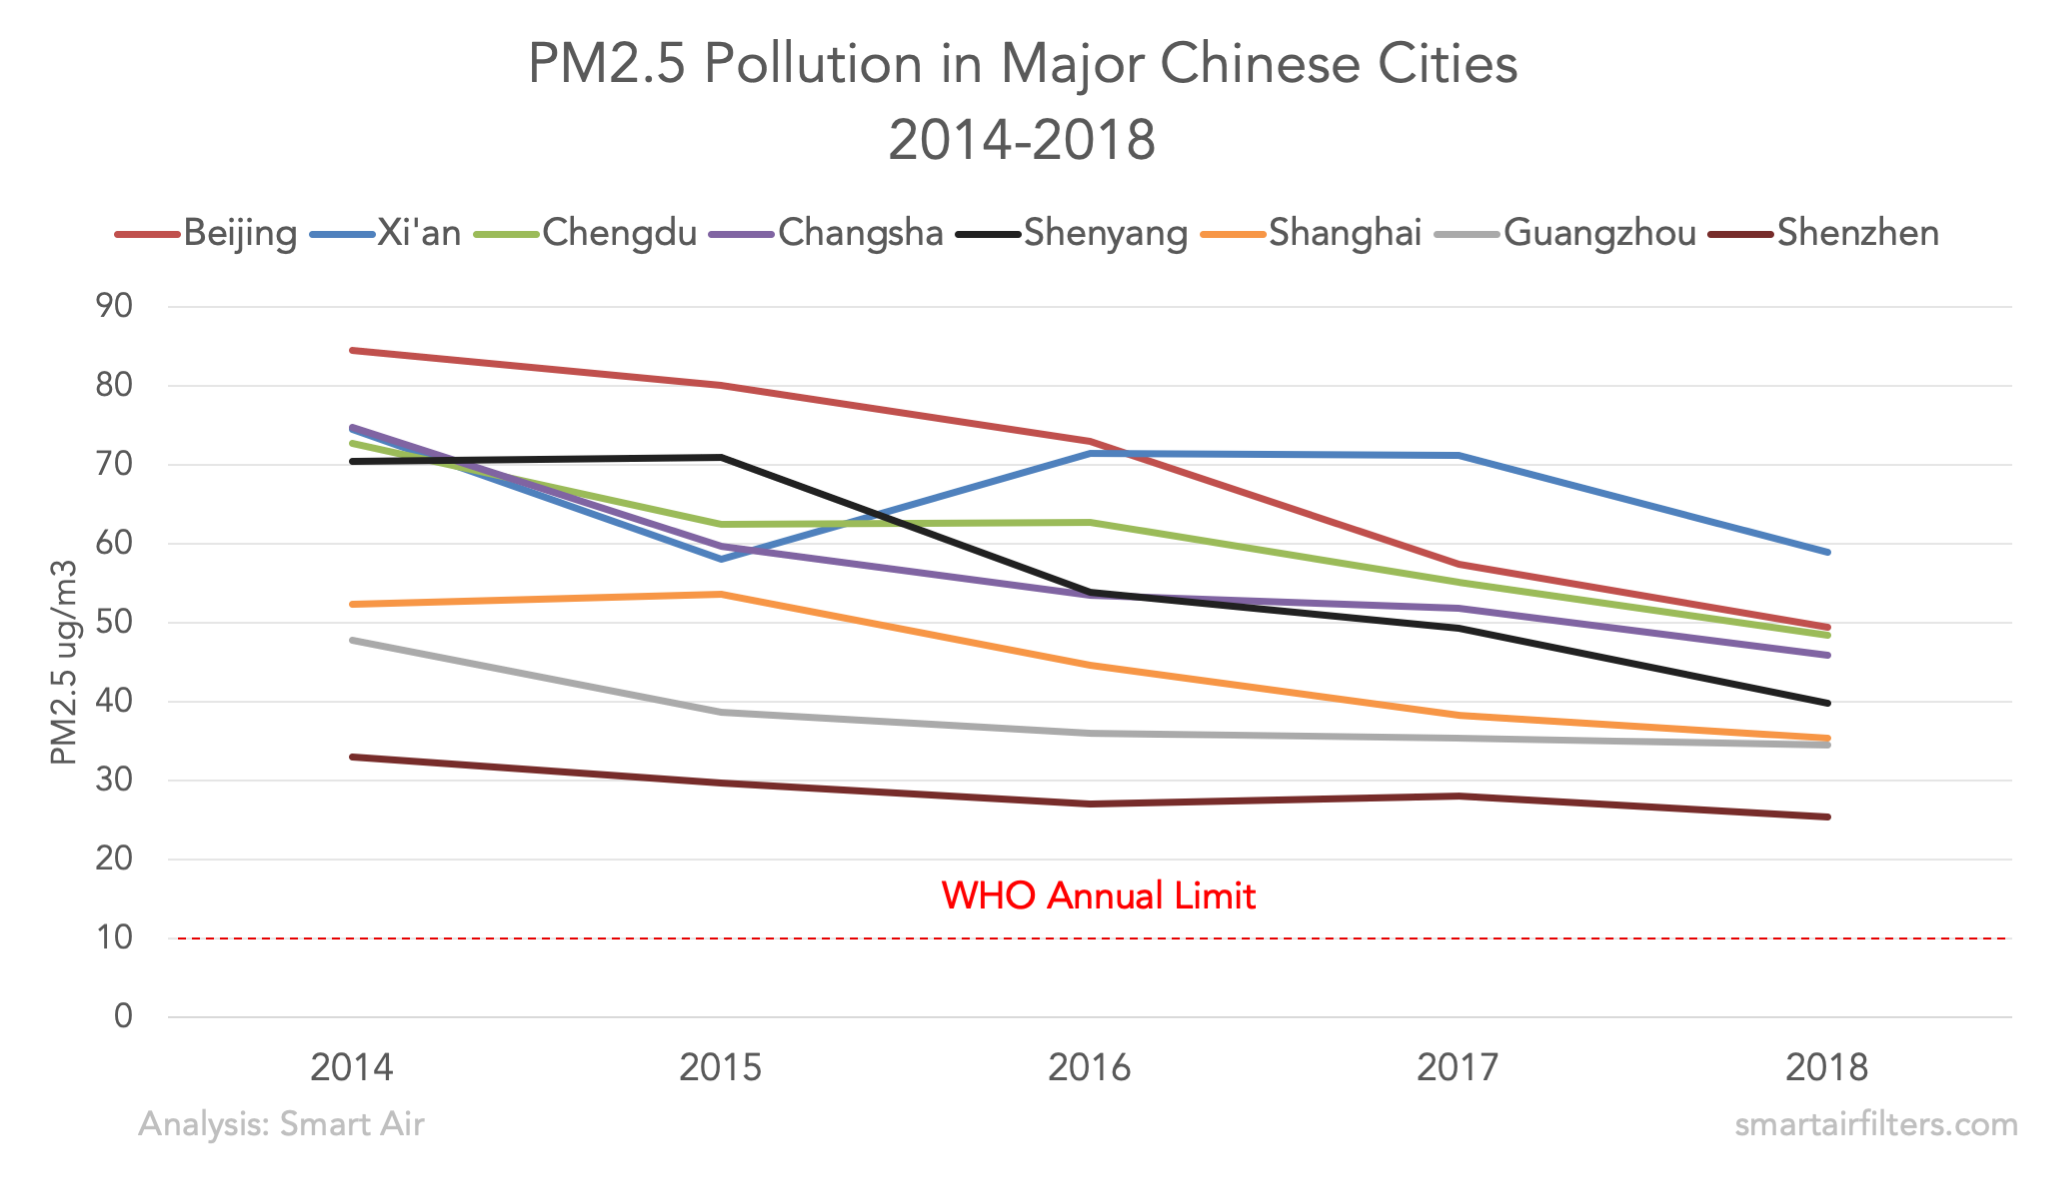 PM2.5 pollution in major Chinese cities 2014-2018